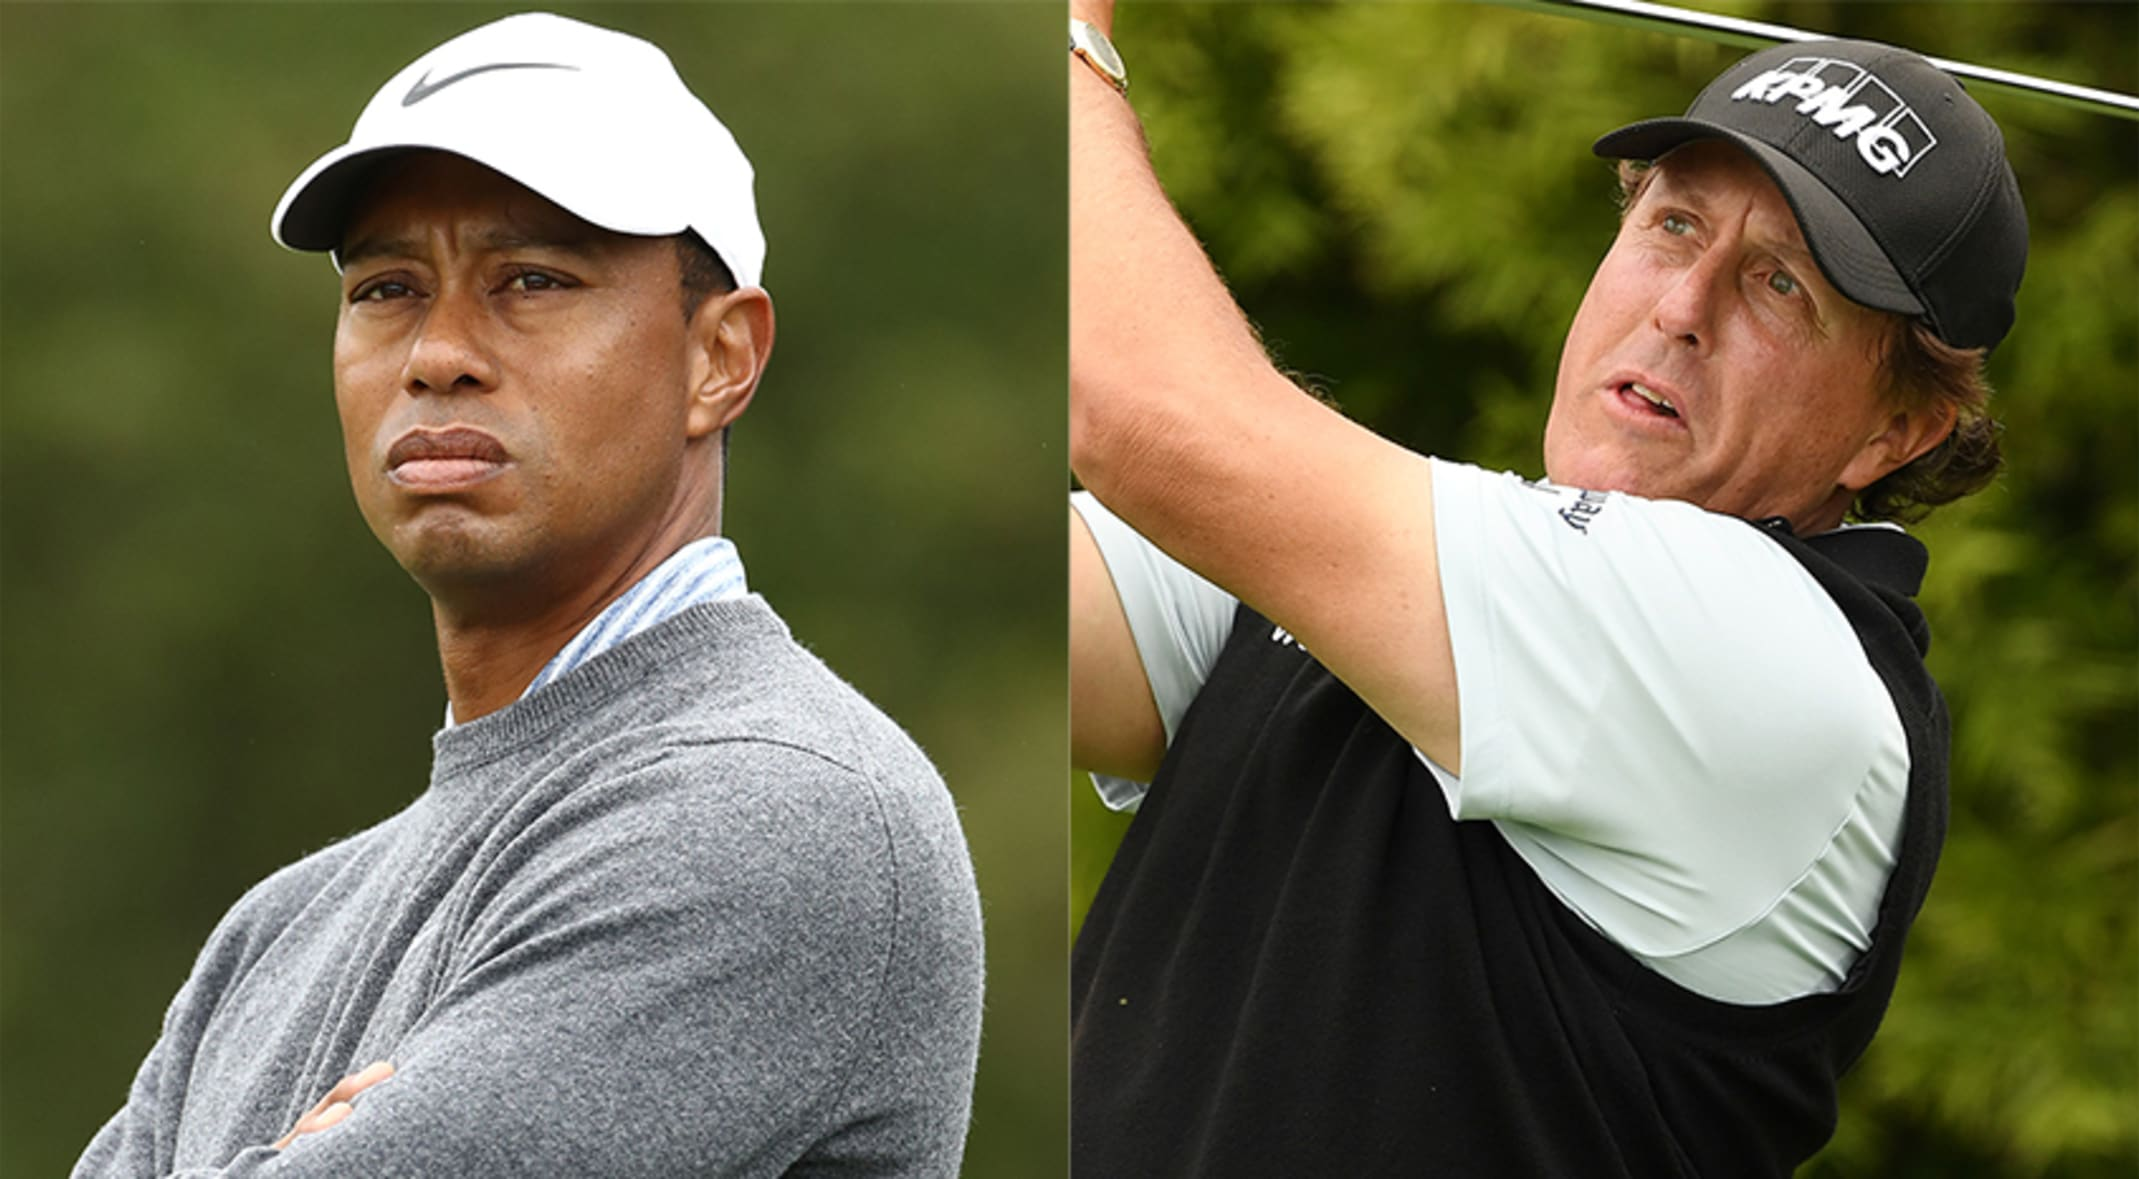 Tough day at Pebble Beach for Woods, Mickelson